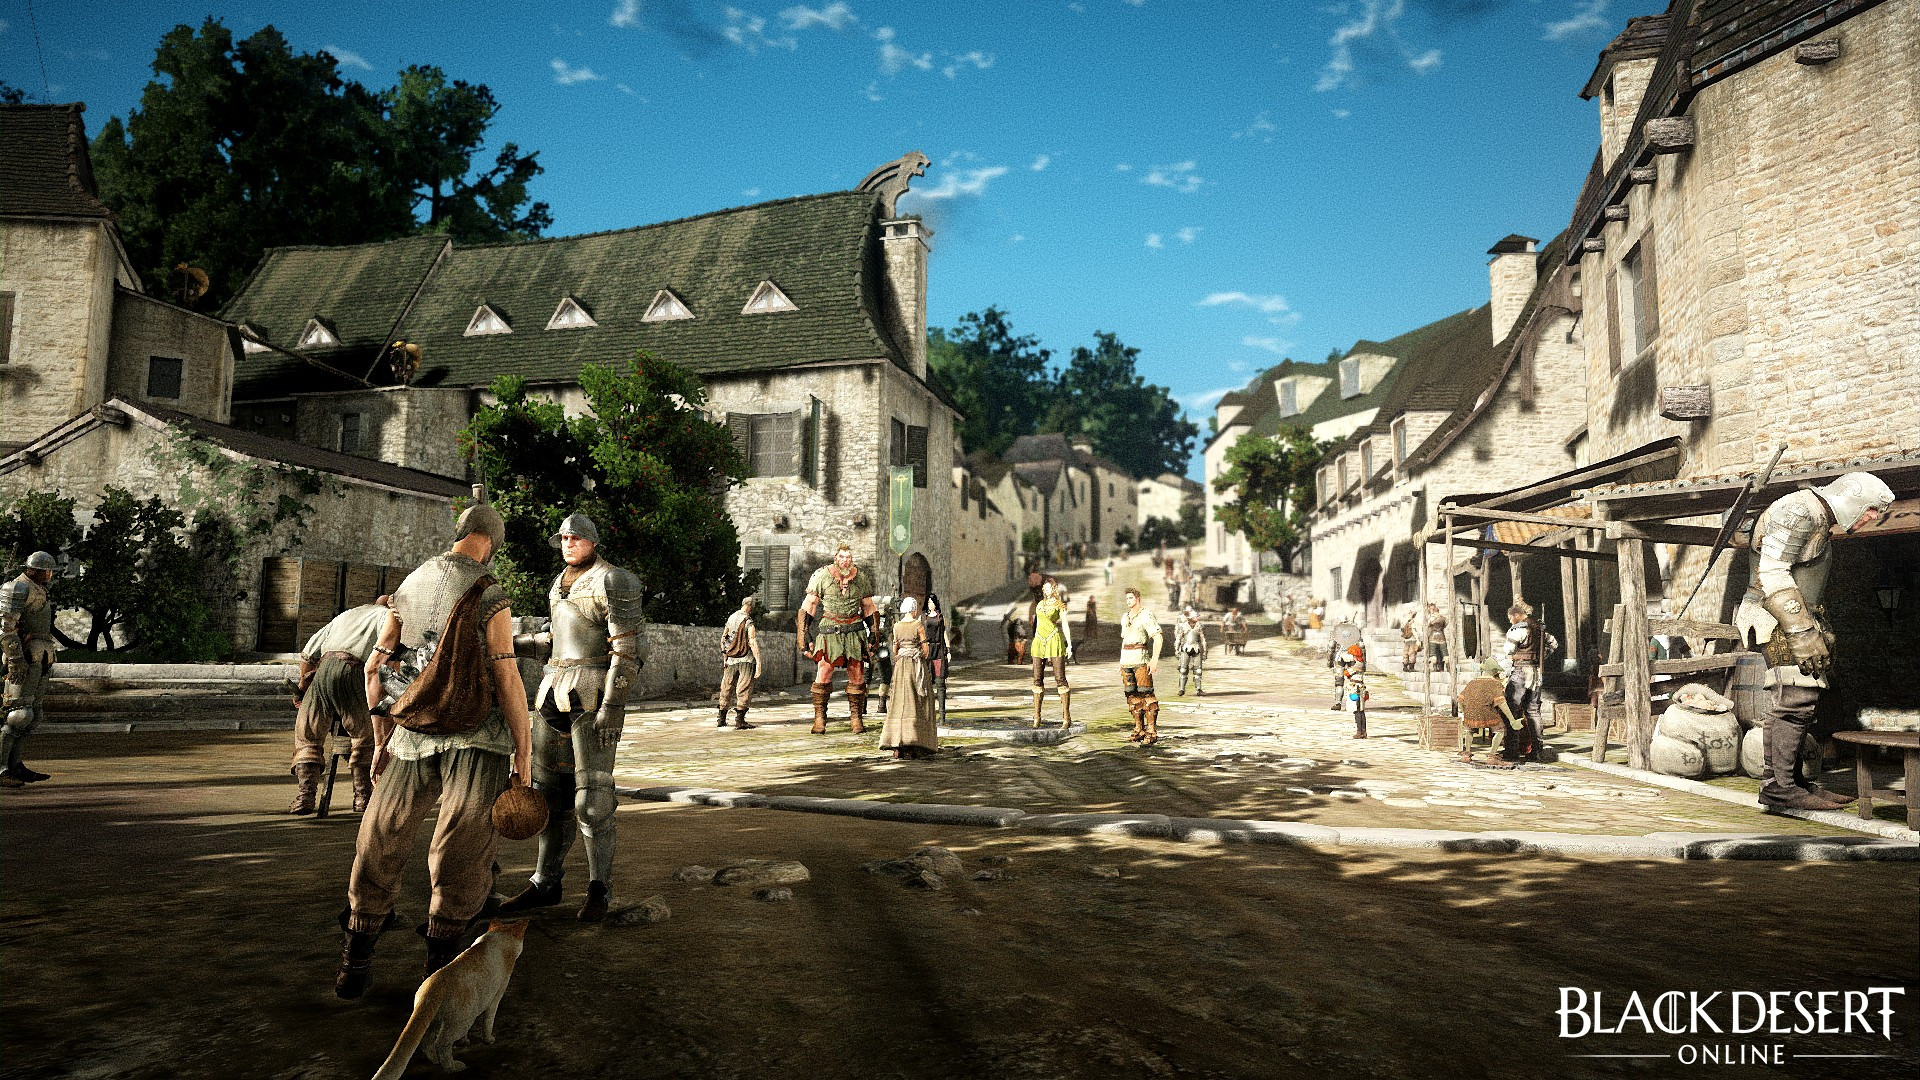 Black Desert Online S Free Kamasylvia Expansion Comes Out On 27th